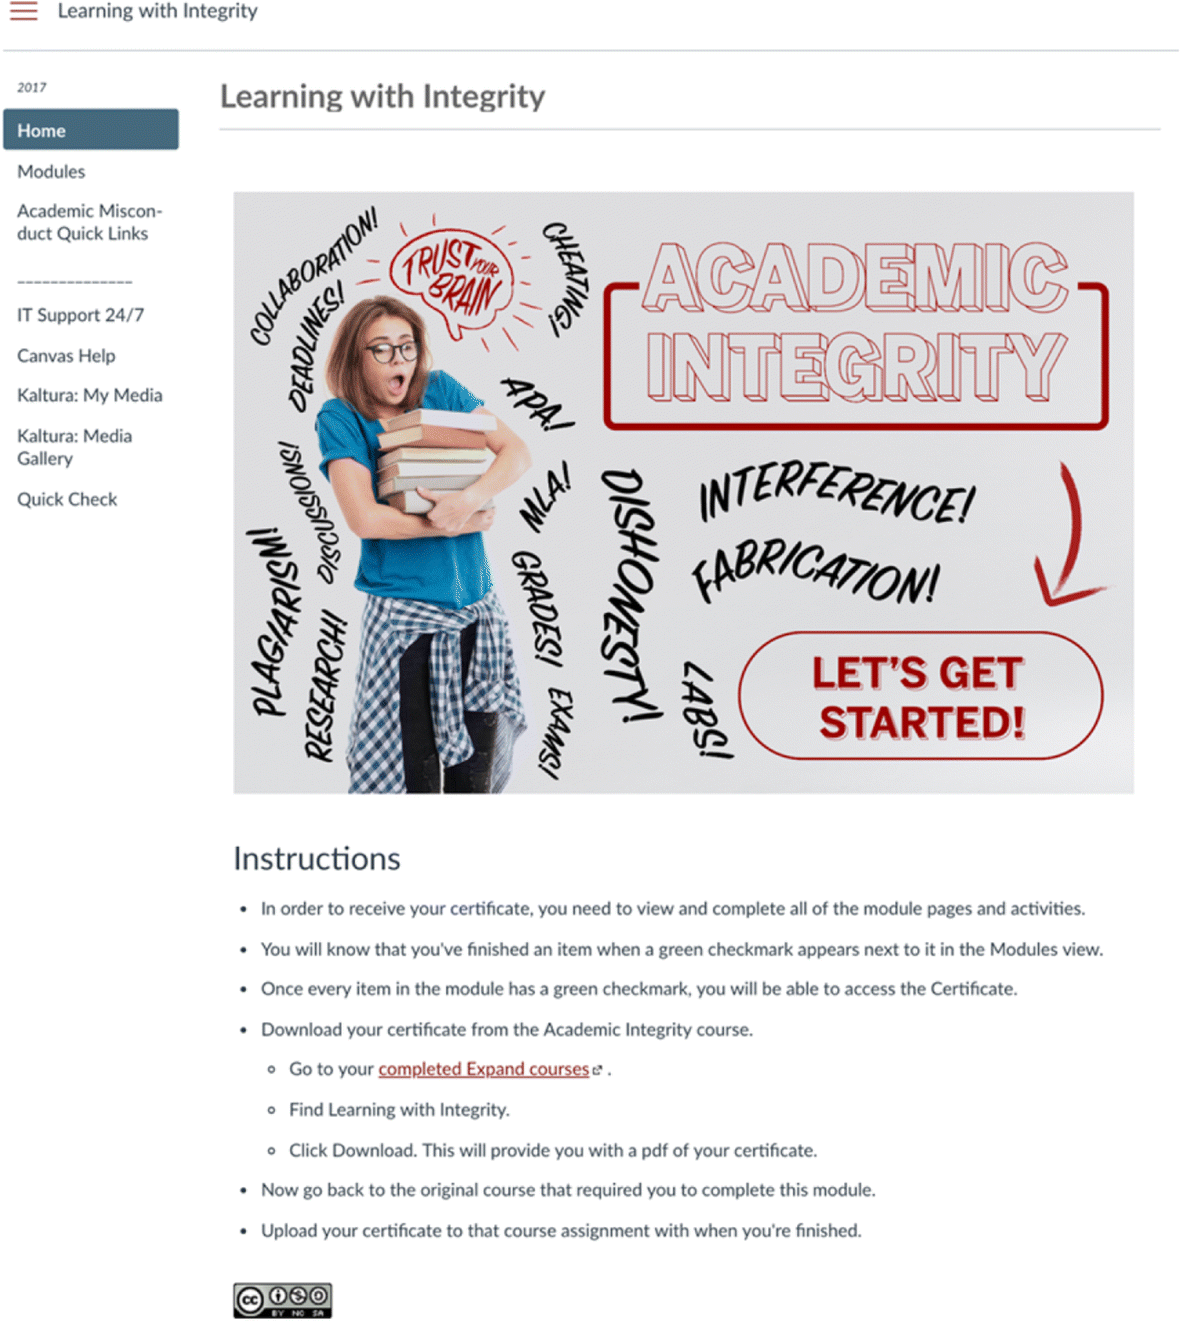 Promoting academic integrity through a stand-alone course in the